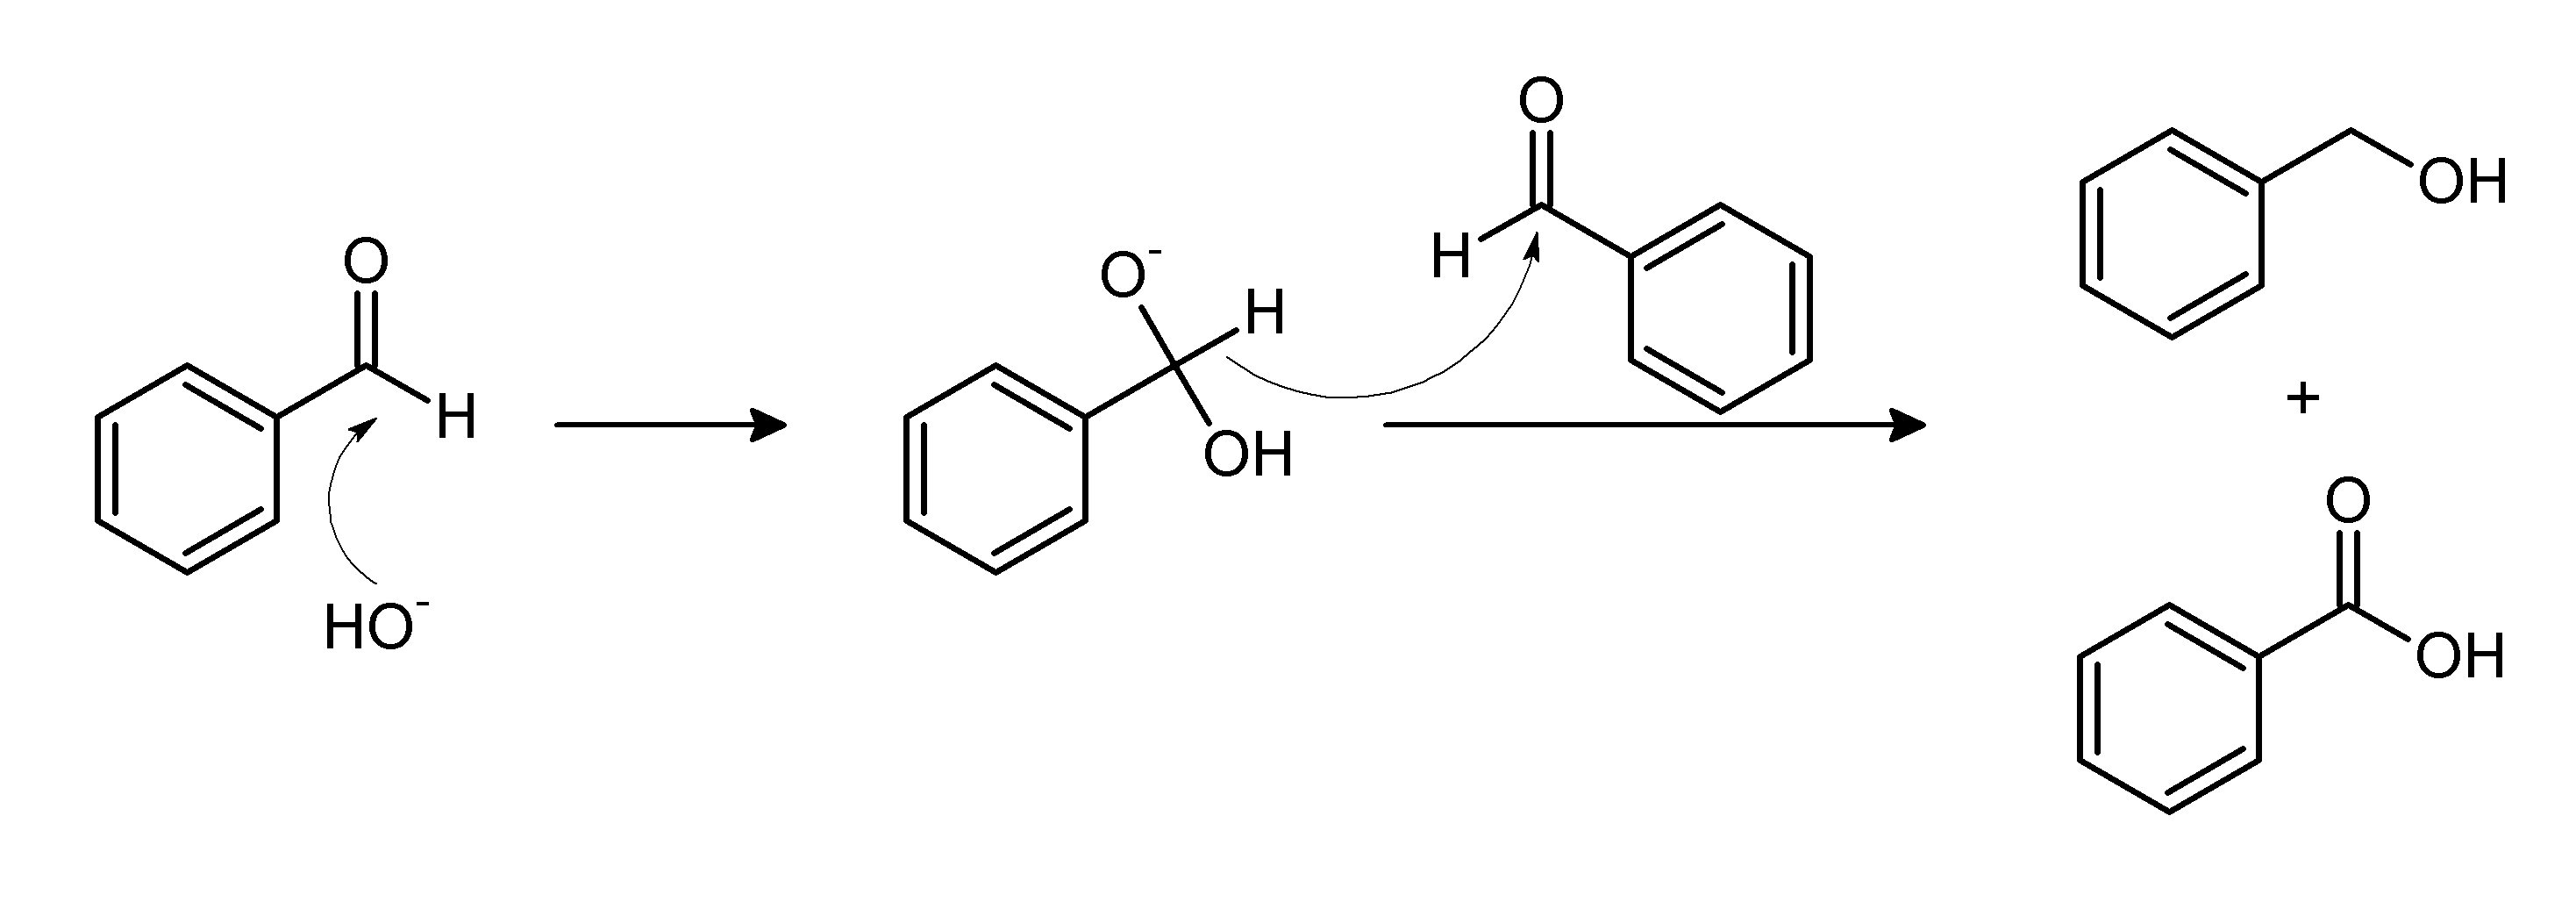 Experiment 24: Theory Dibenzalacetone Synthesis (final